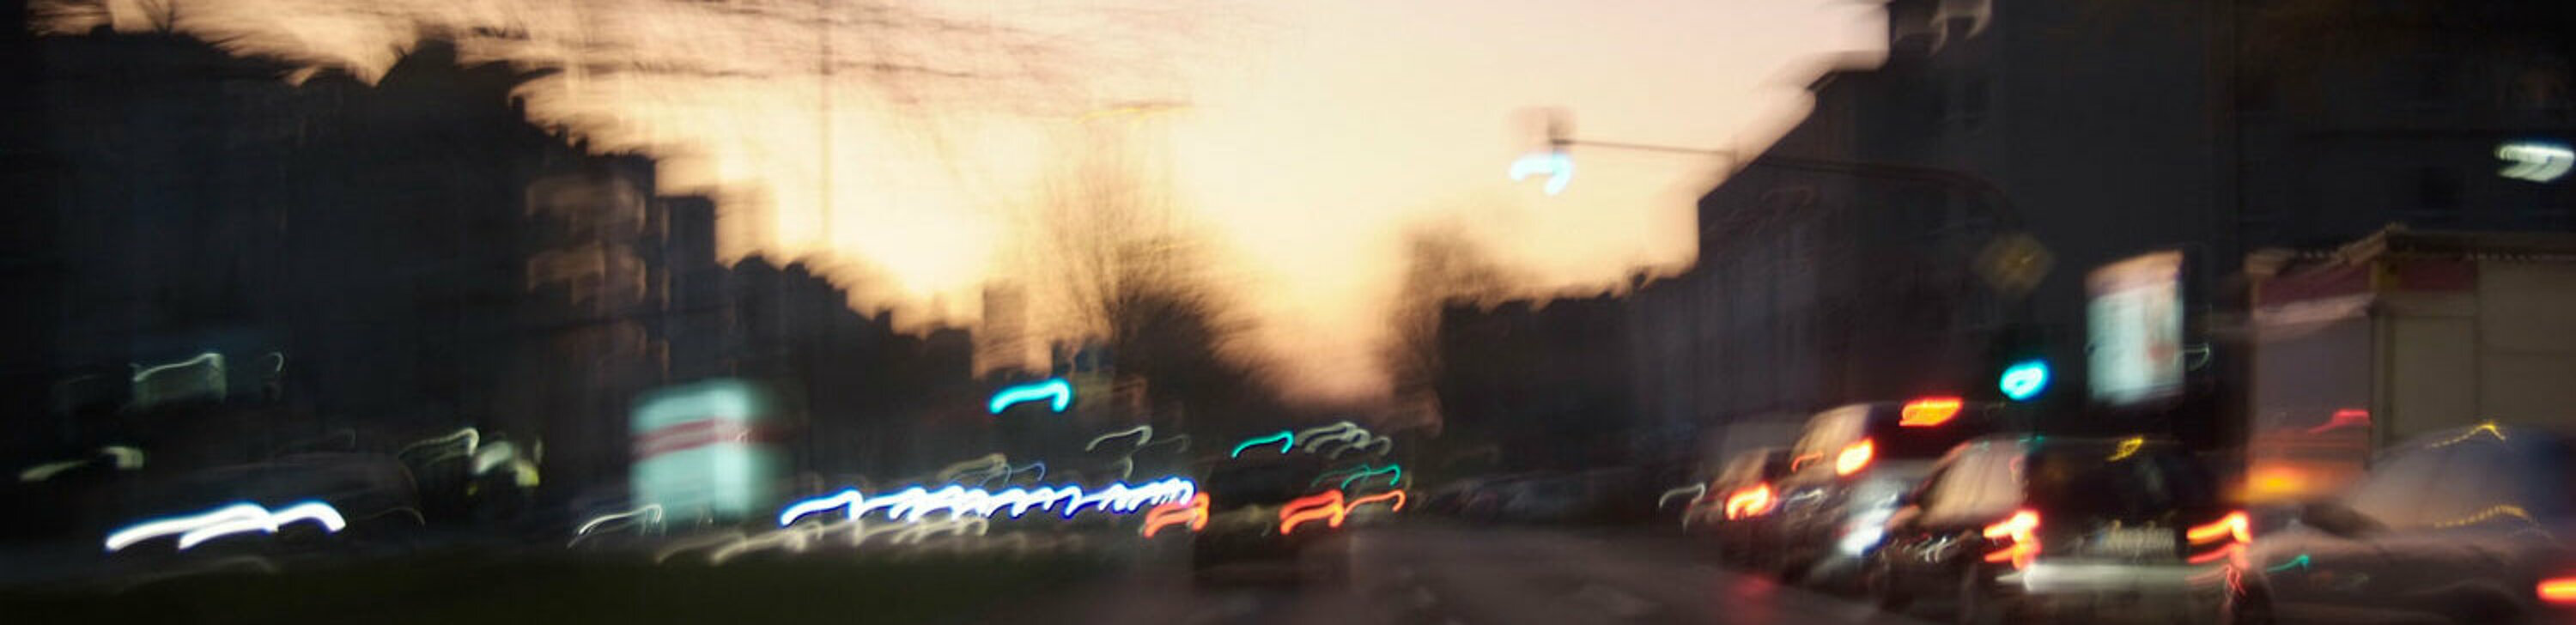 street_driving_in_twilight_1500